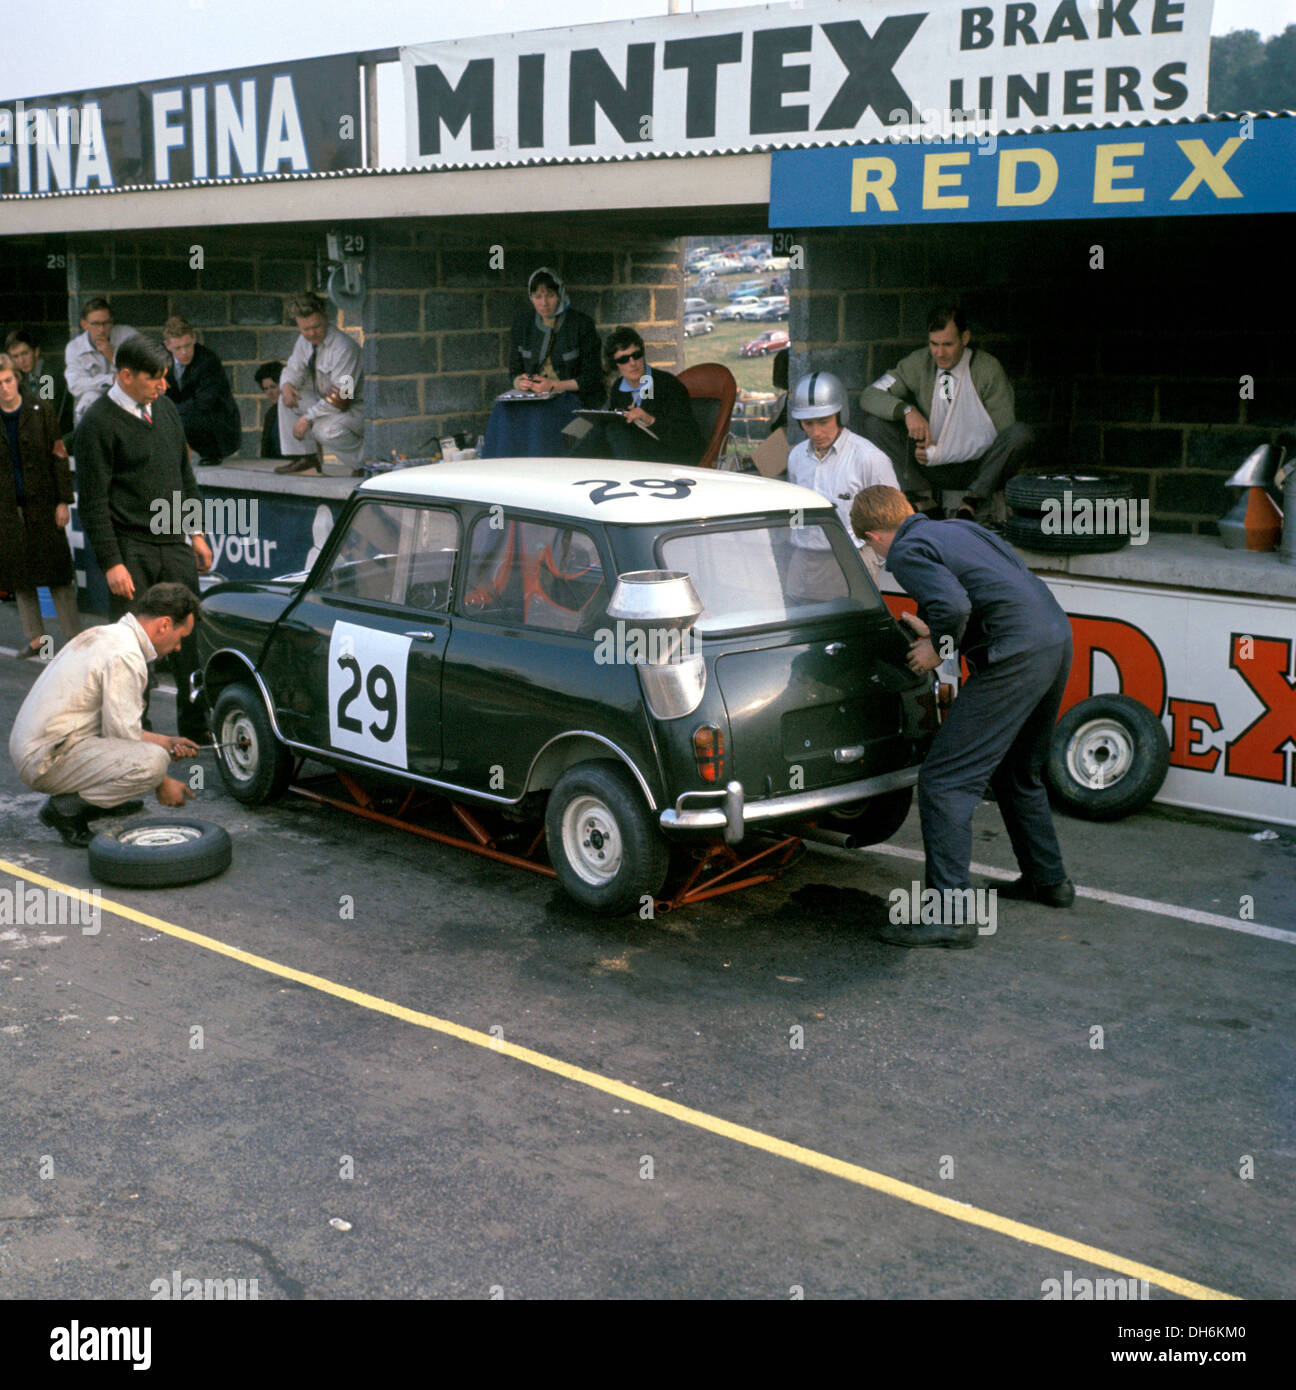 john whitmore bill blydensteins mini cooper in motor six hours race at brands hatch england 6th october 1962